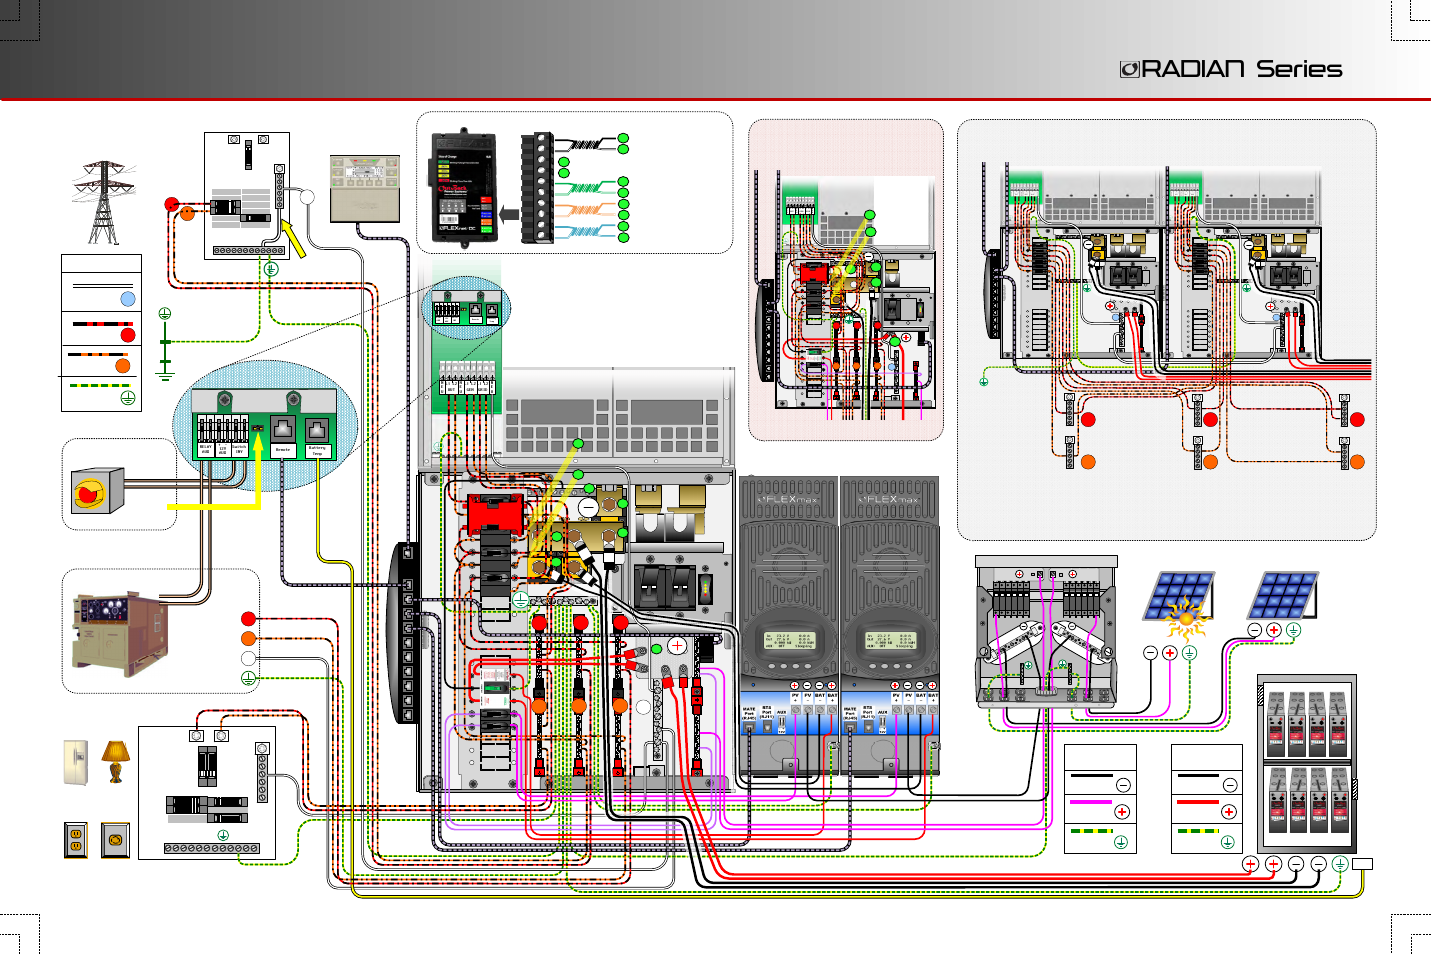 outback power systems gs4048a quick start guide with gslc page4 wiring radian series, gs8048a wiring and external system, gs8048a wiring diagram for outback radian at nearapp.co